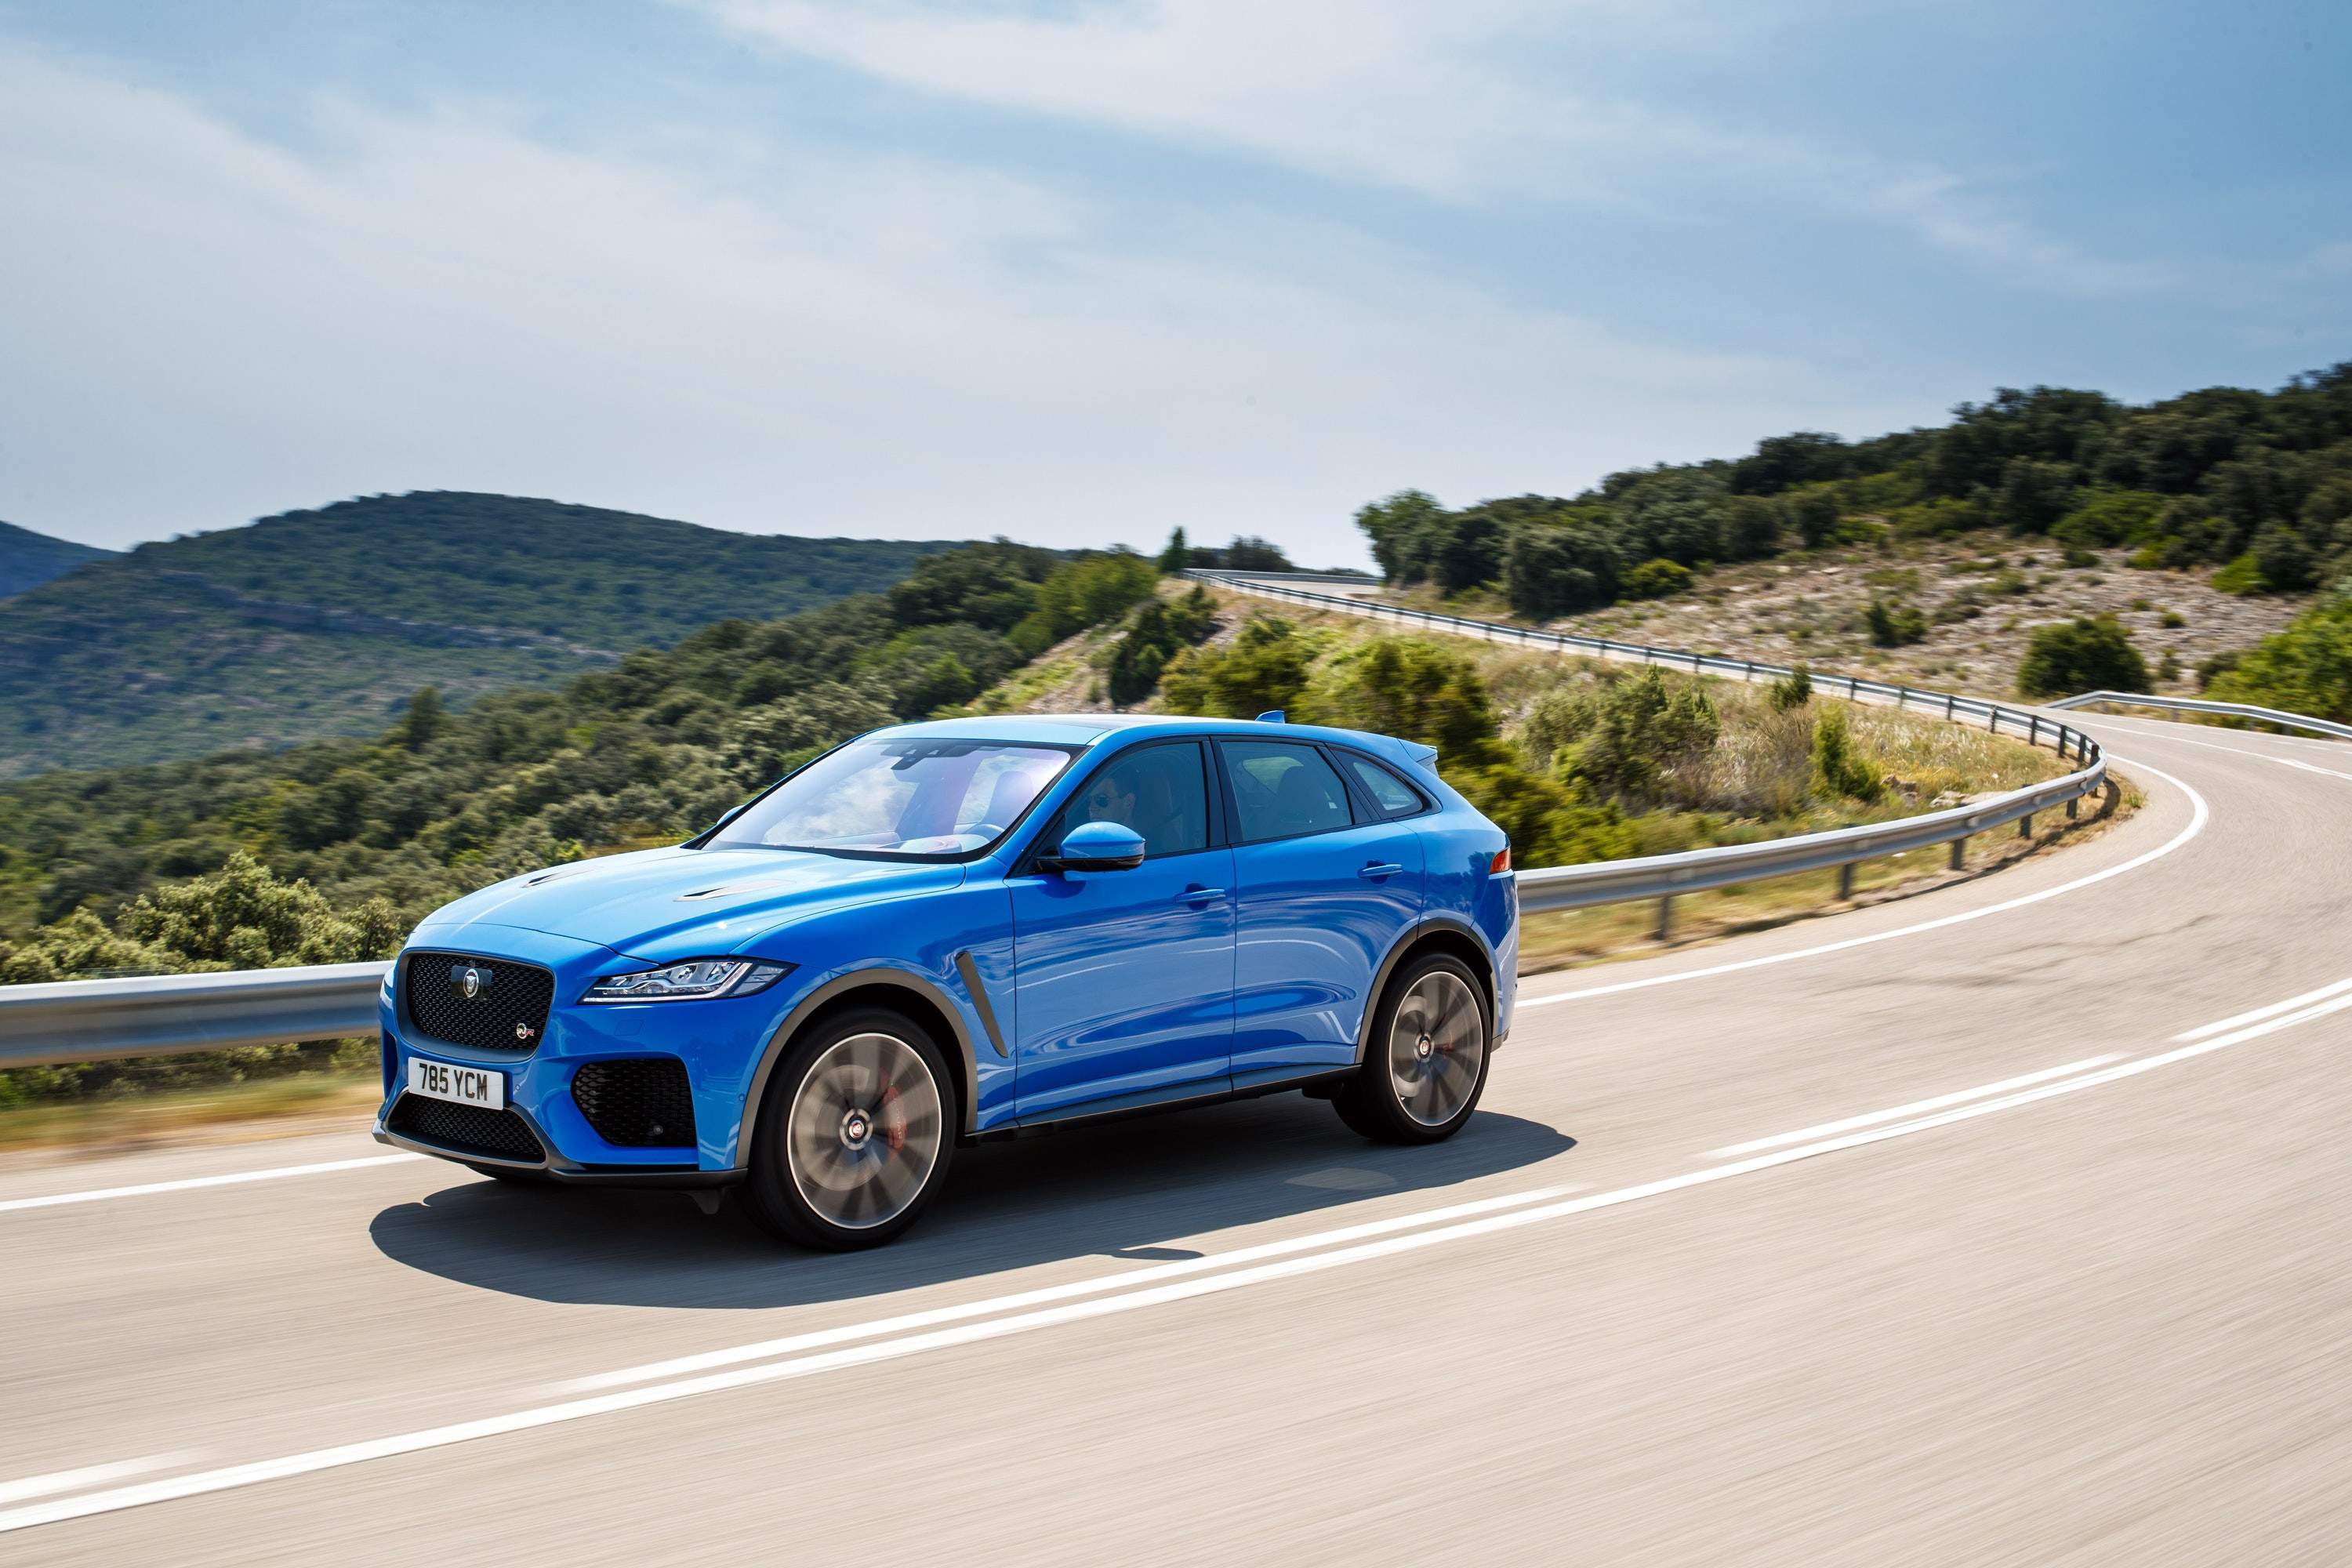 Jaguar F-Pace SVR, in Blue, driving down the road